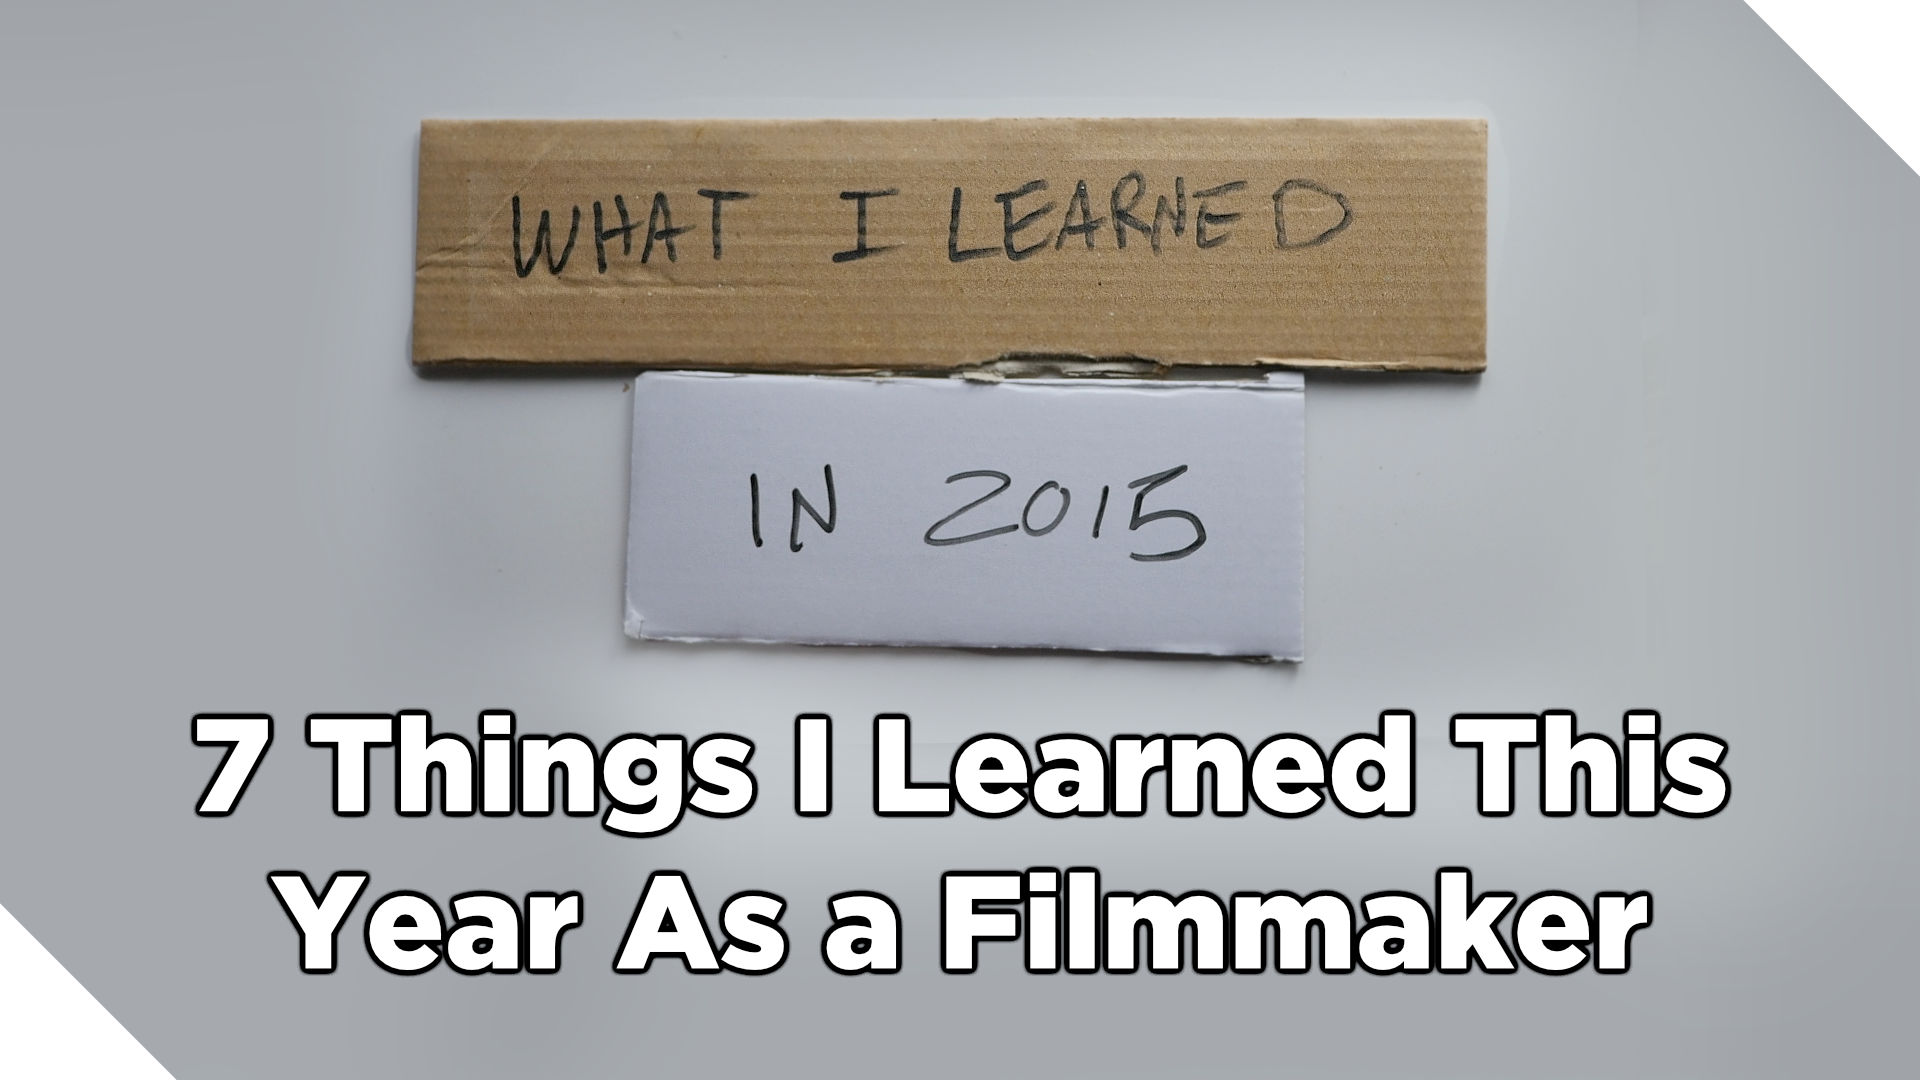 7 Things I Learned This Year As A Filmmaker